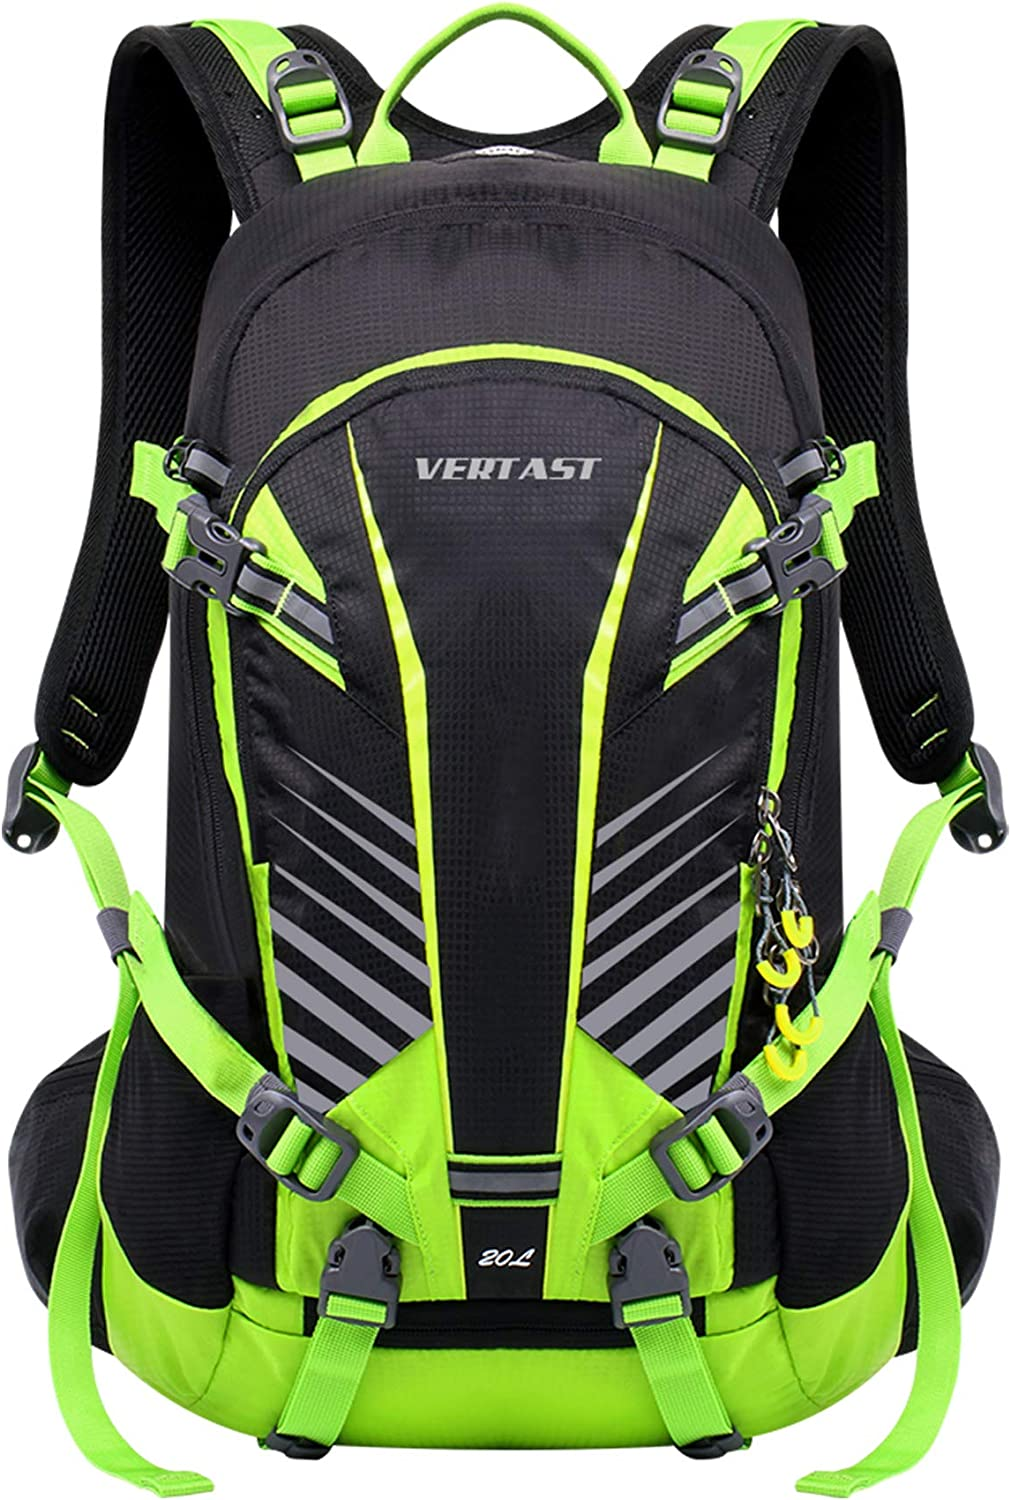 VERTAST 20L Lightweight Cycling Backpack Hydration Pack Waterproof Hiking Climbing Rucksack with Rain Cover